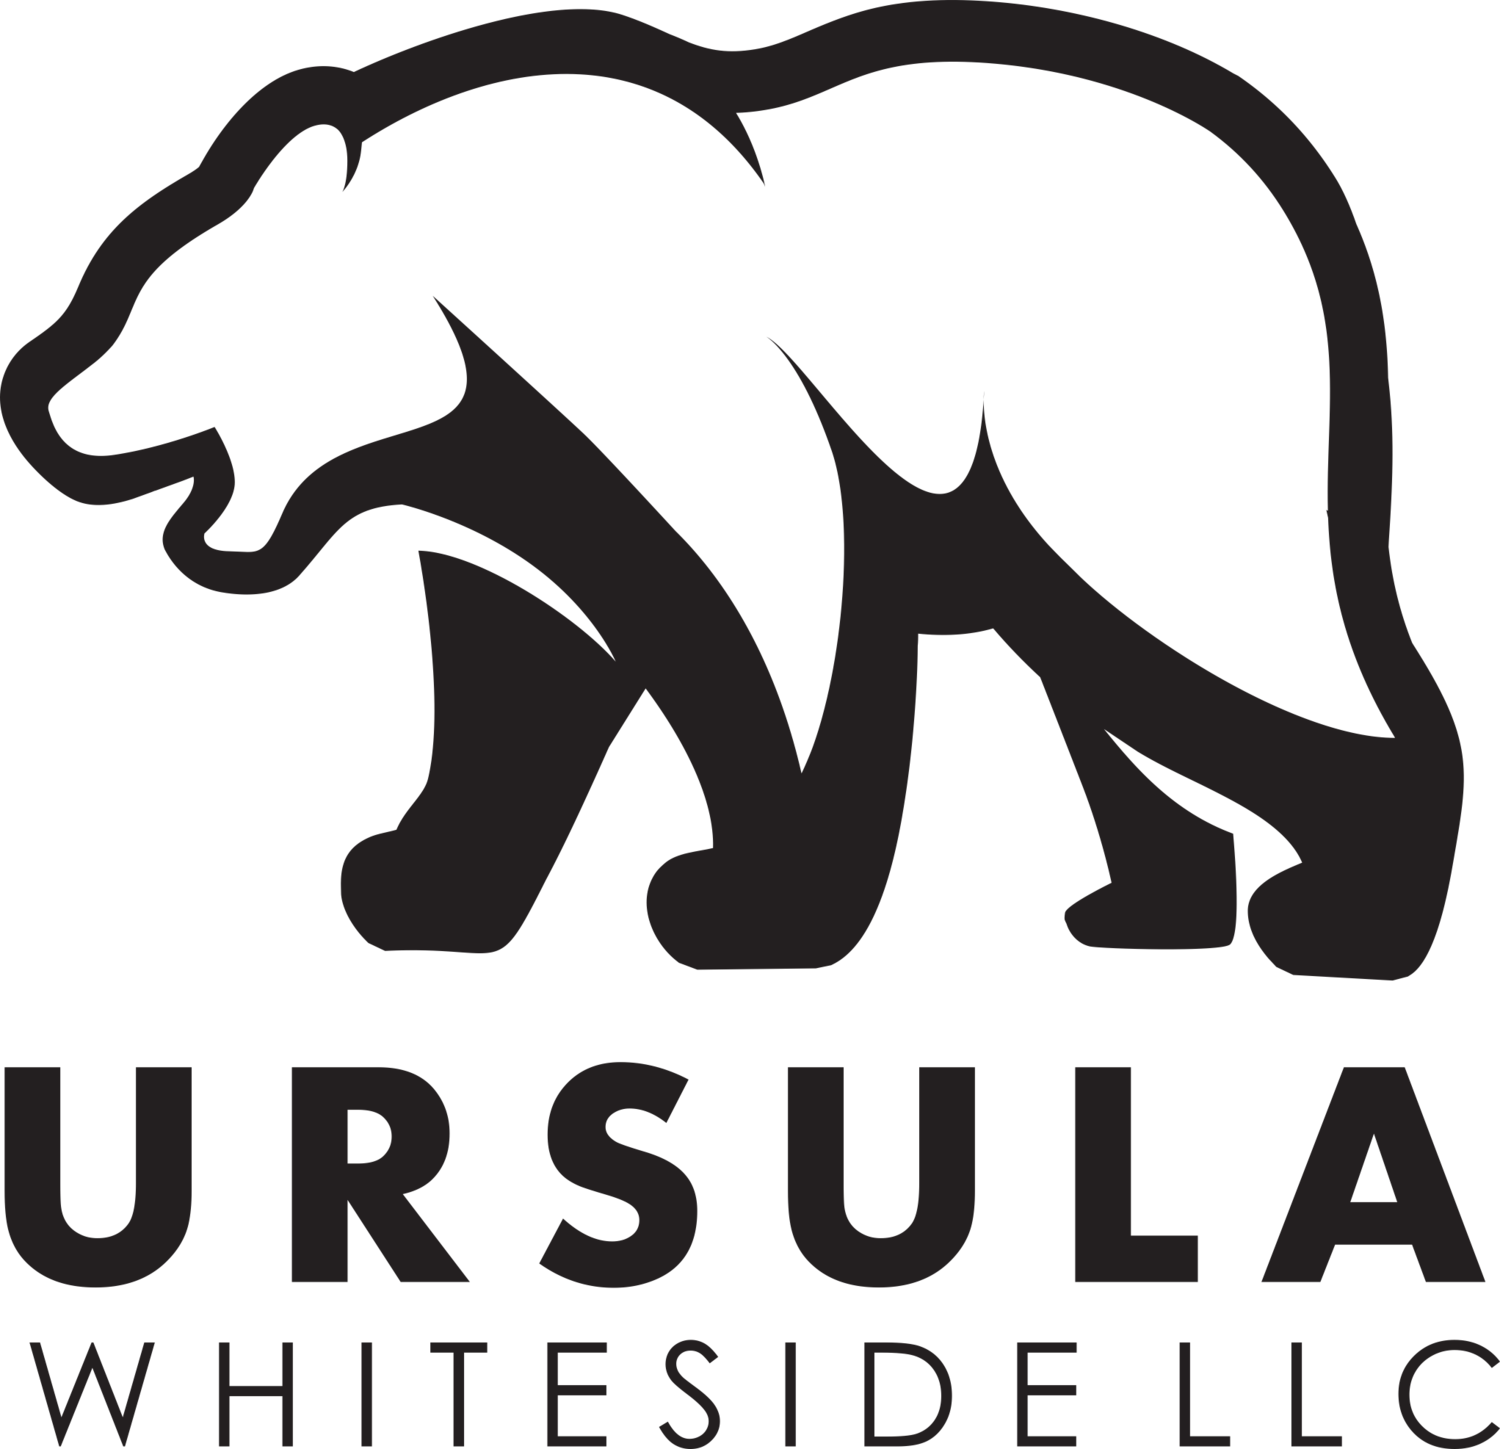 Ursula Whiteside LLC